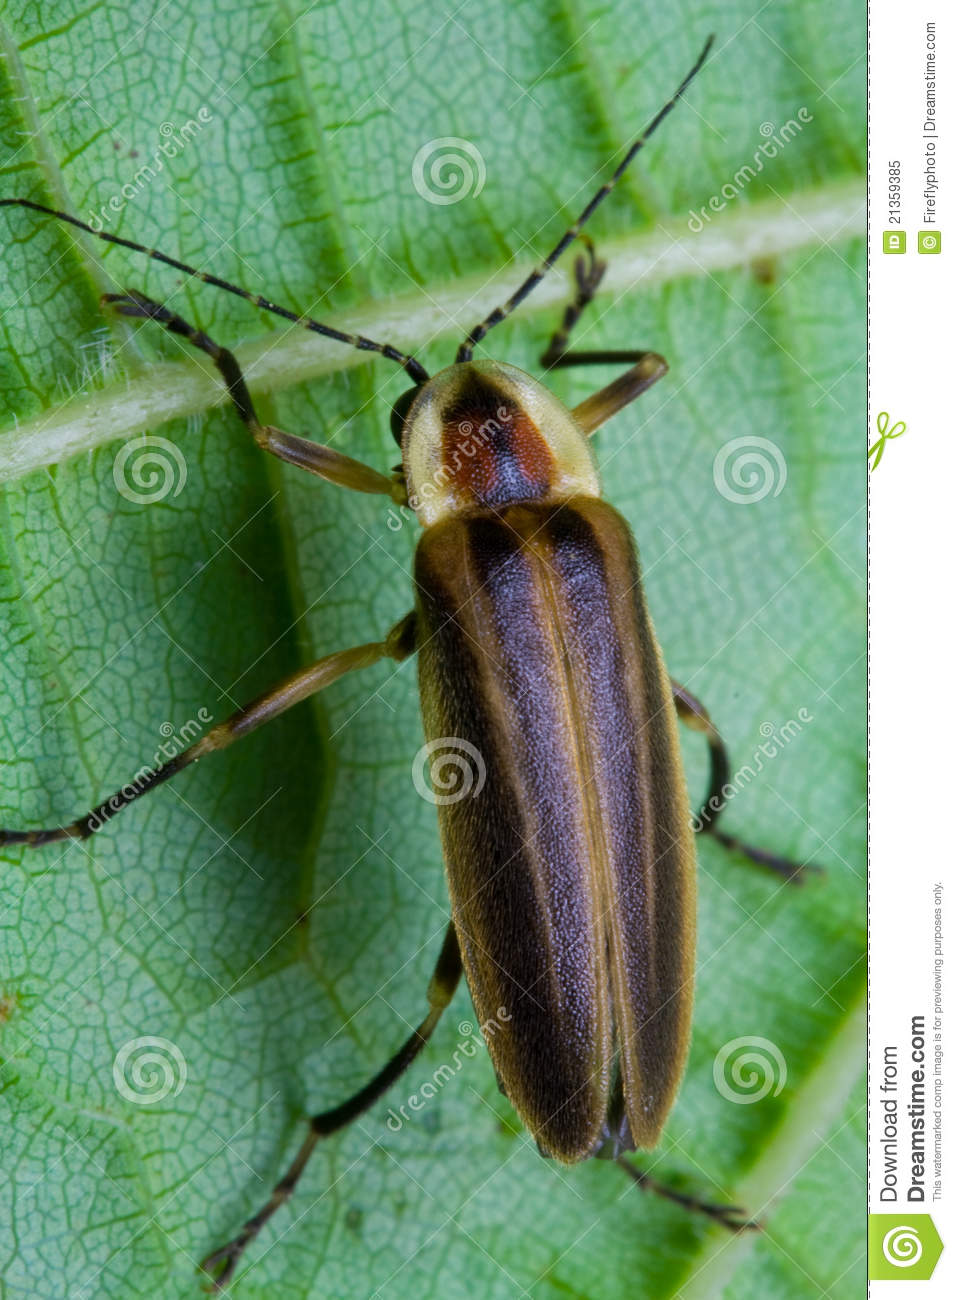 Luminous Insects Stock Photography 47392688